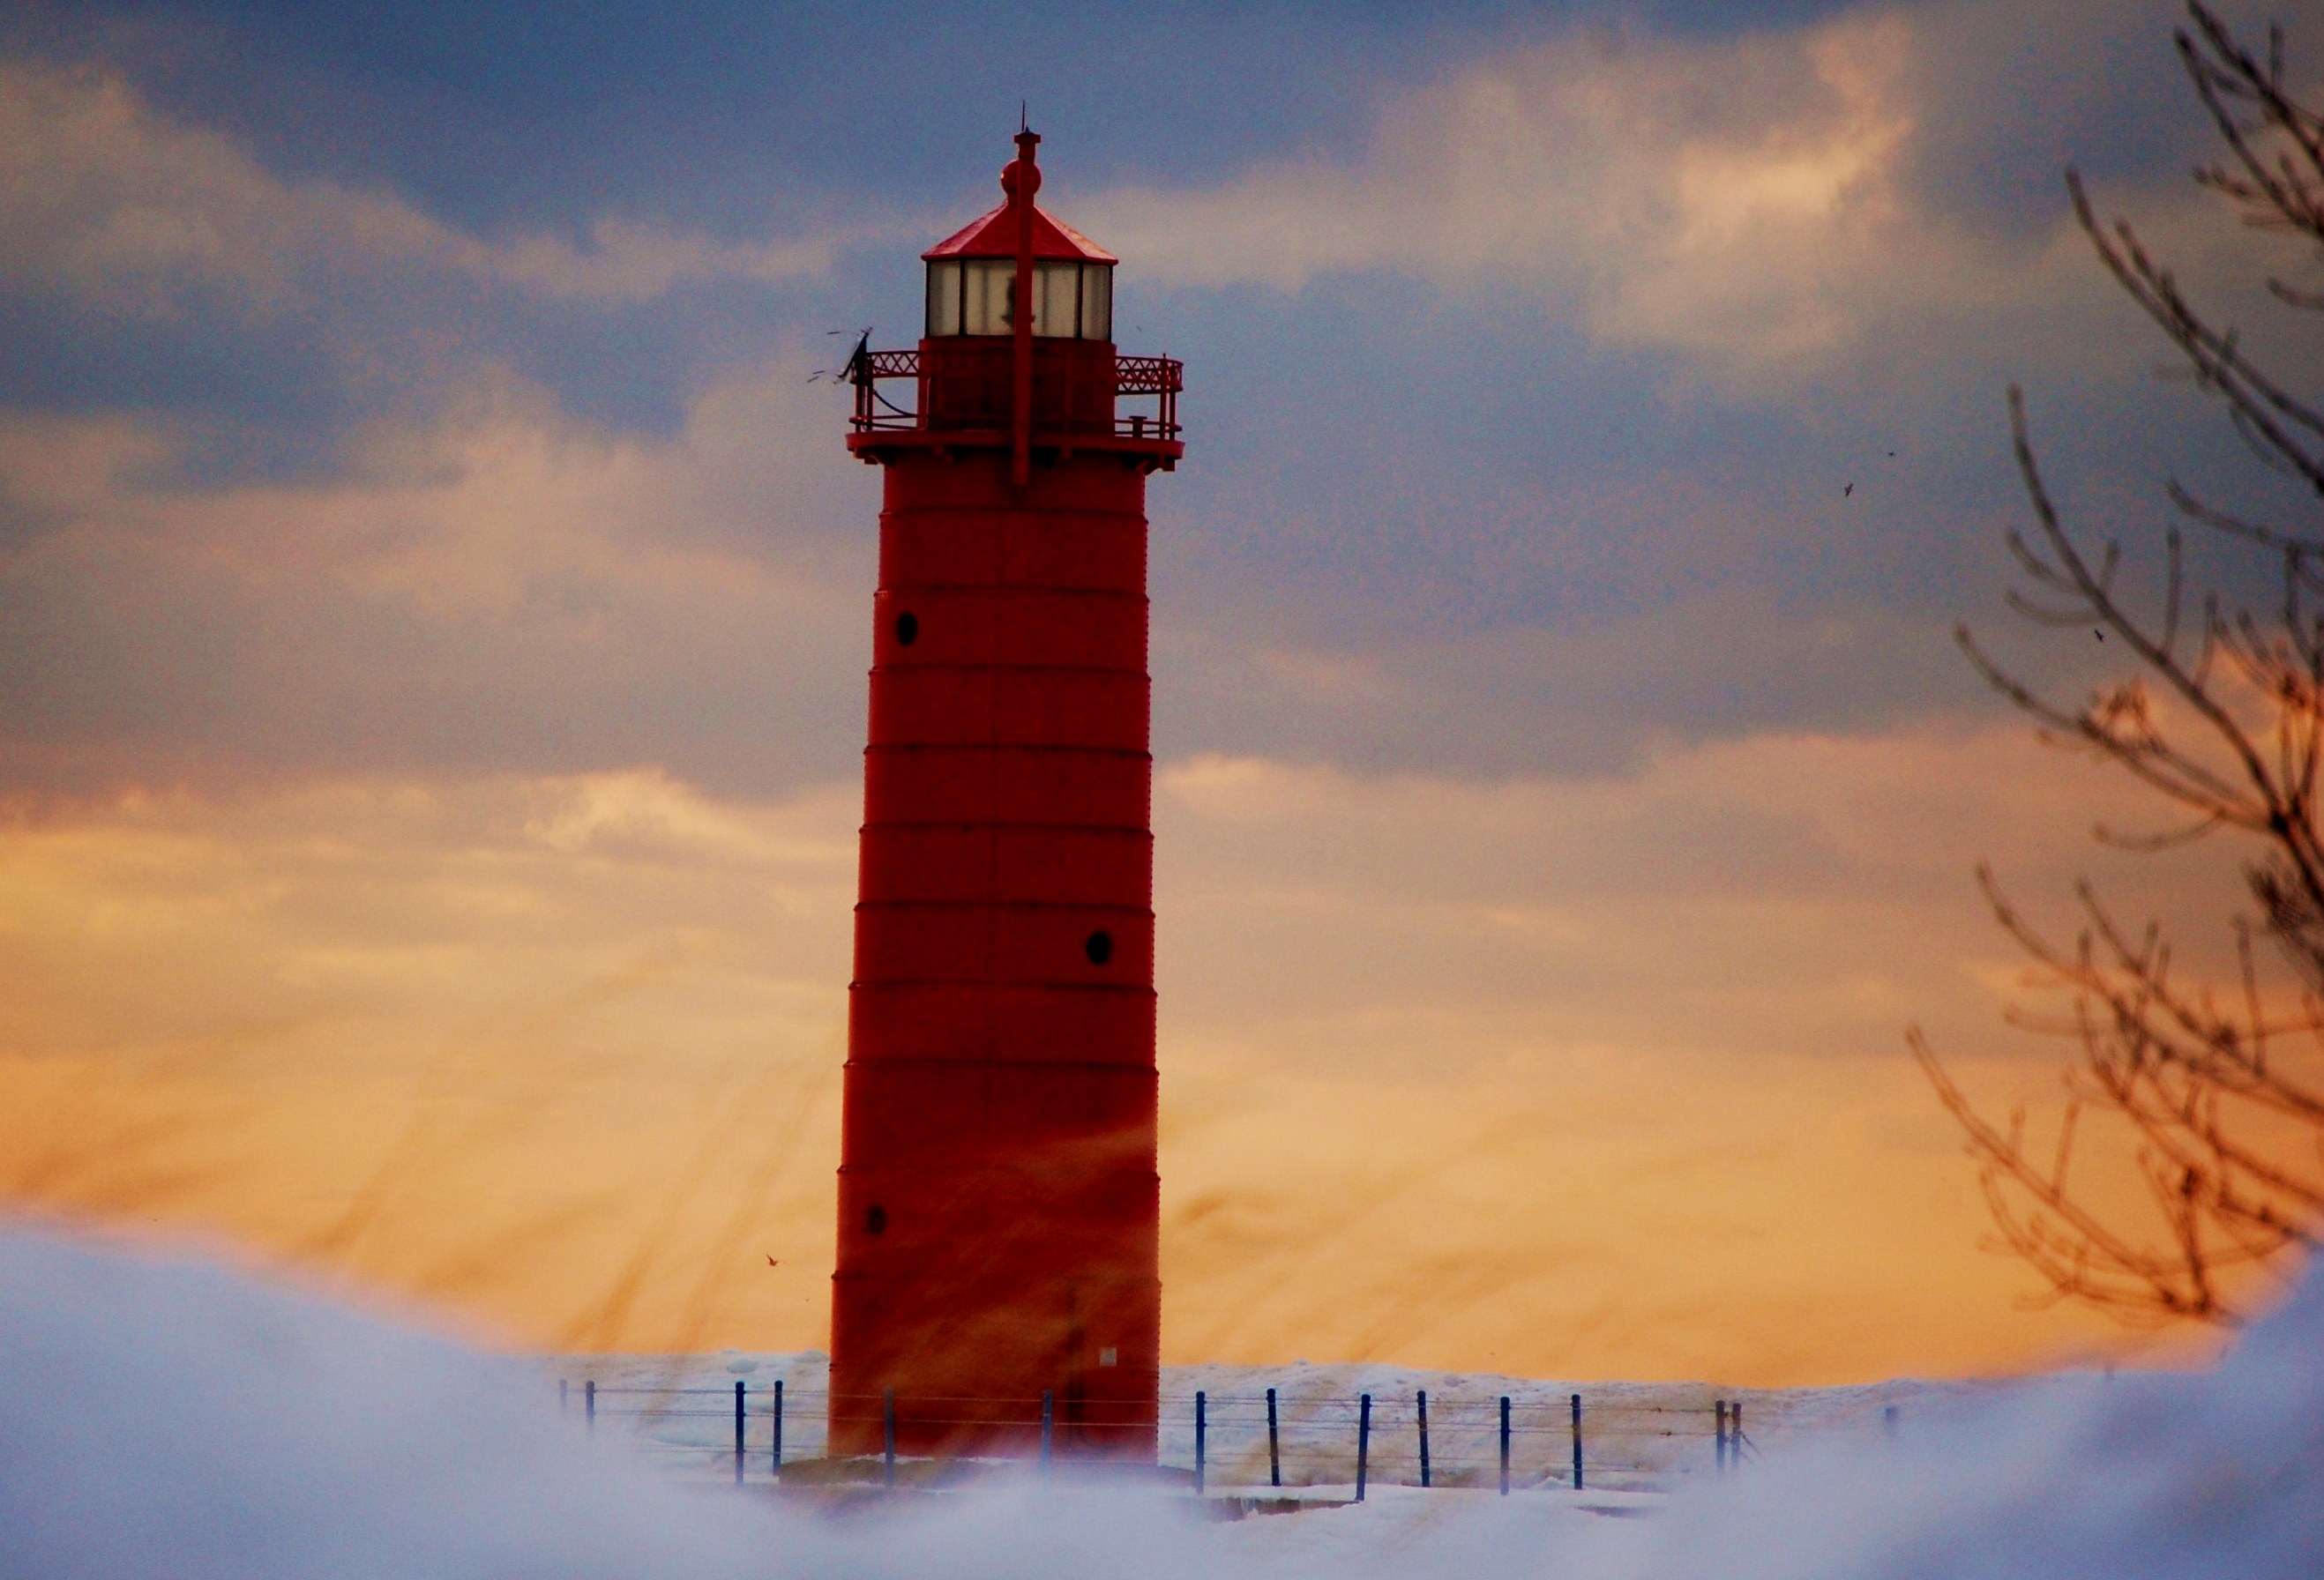 muskegon michigan dating Get the muskegon weather forecast access hourly, 10 day and 15 day forecasts along with up to the minute reports and videos for muskegon, mi 49440 from accuweathercom.